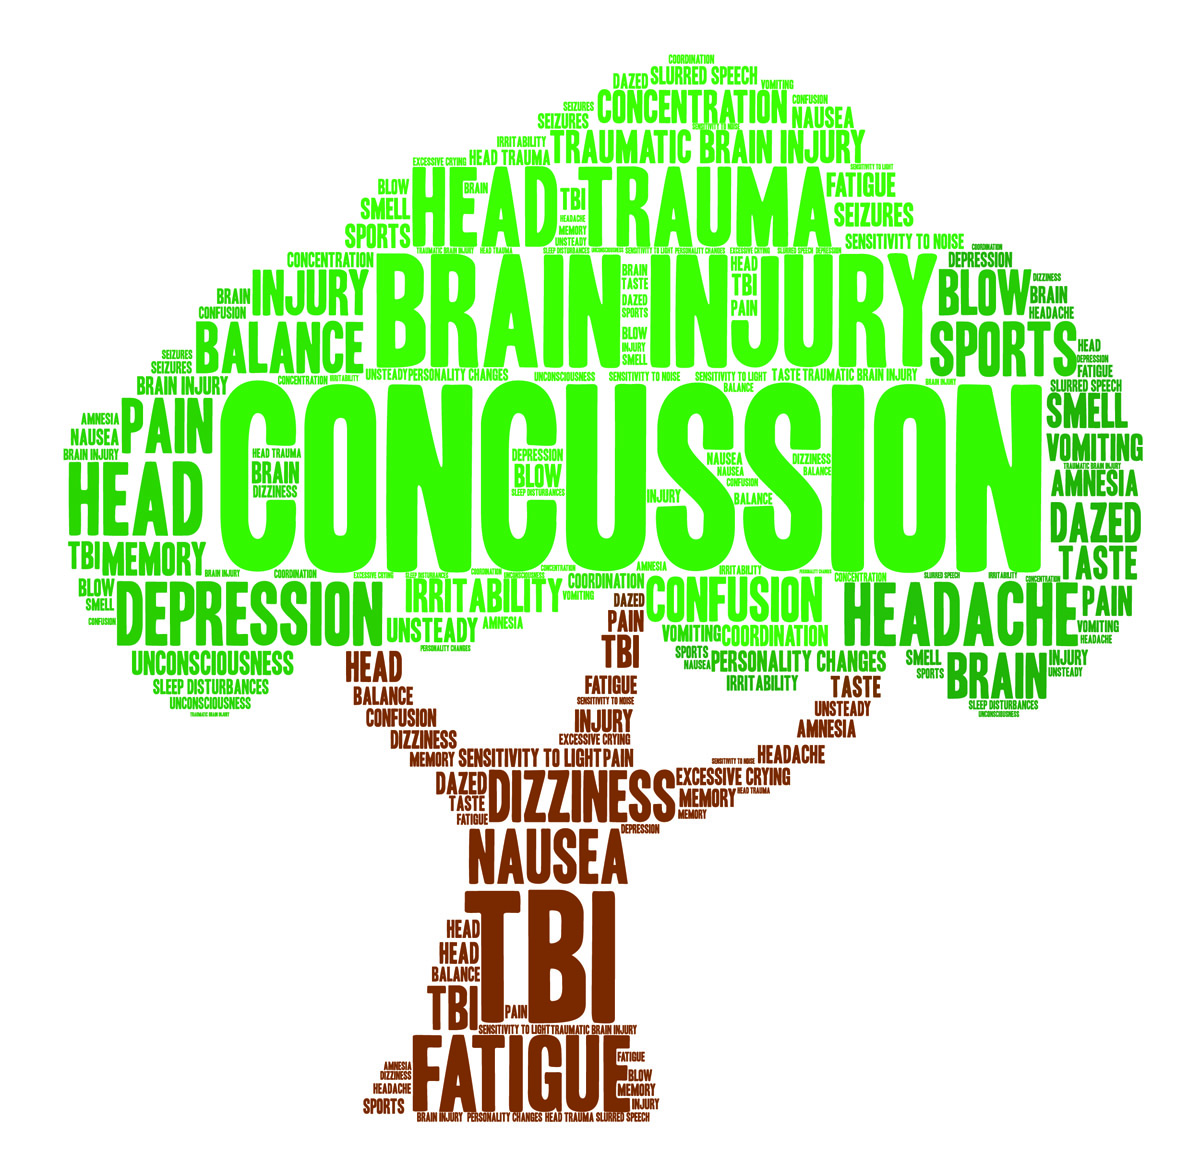 TBI: TRAUMATIC BRAIN INJURY